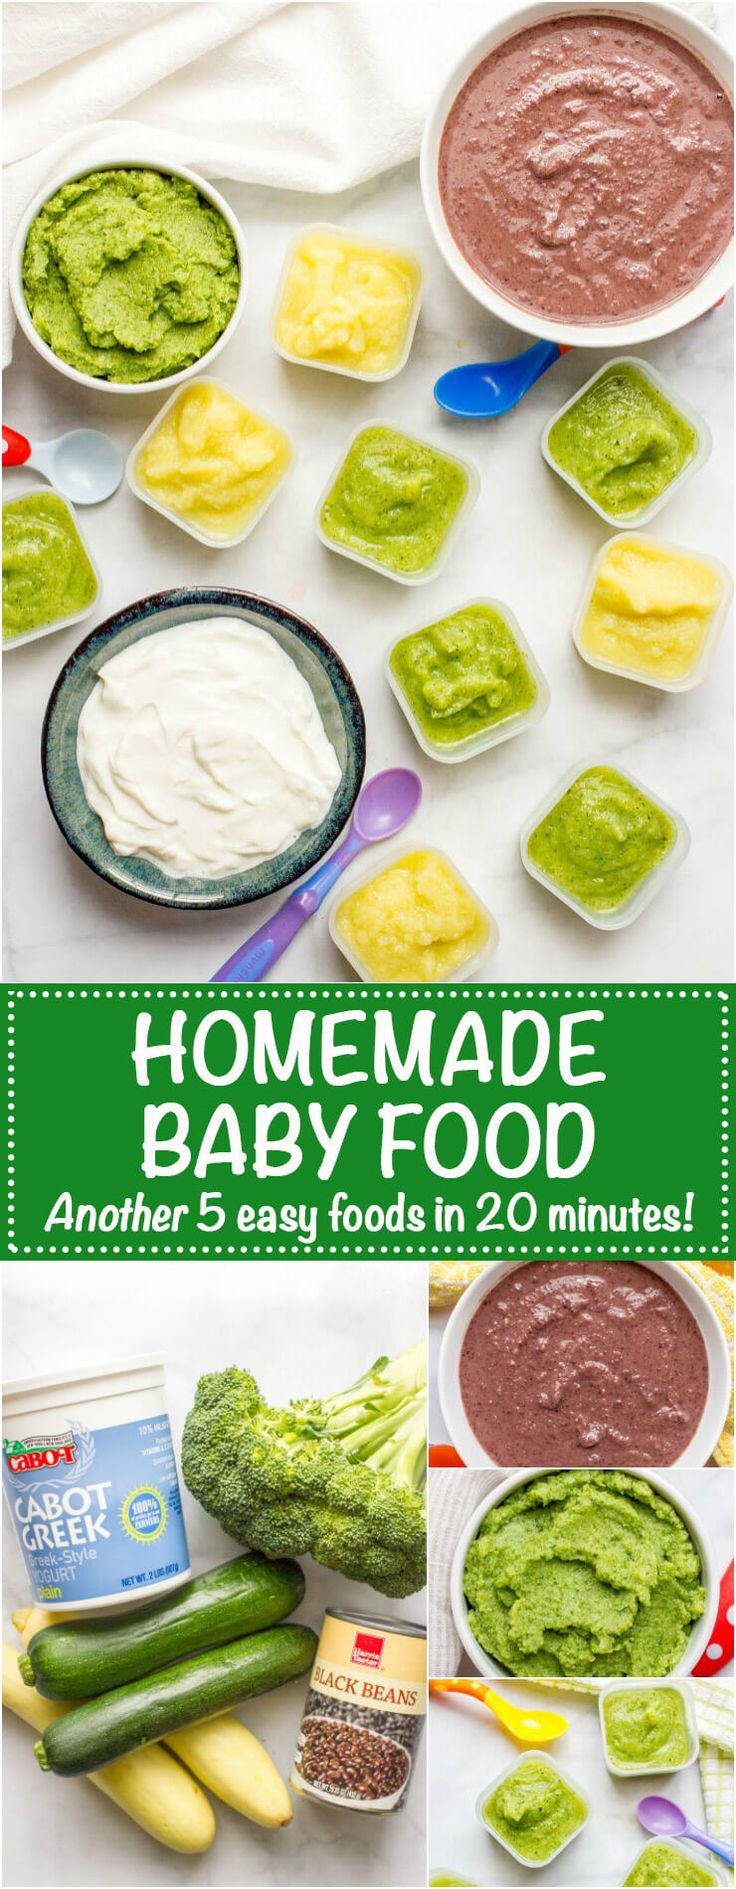 Homemade baby food -- easy how to for broccoli, zucchini, squash, black beans and yogurt, all in just 20 minutes! | www.familyfoodonthetable.com